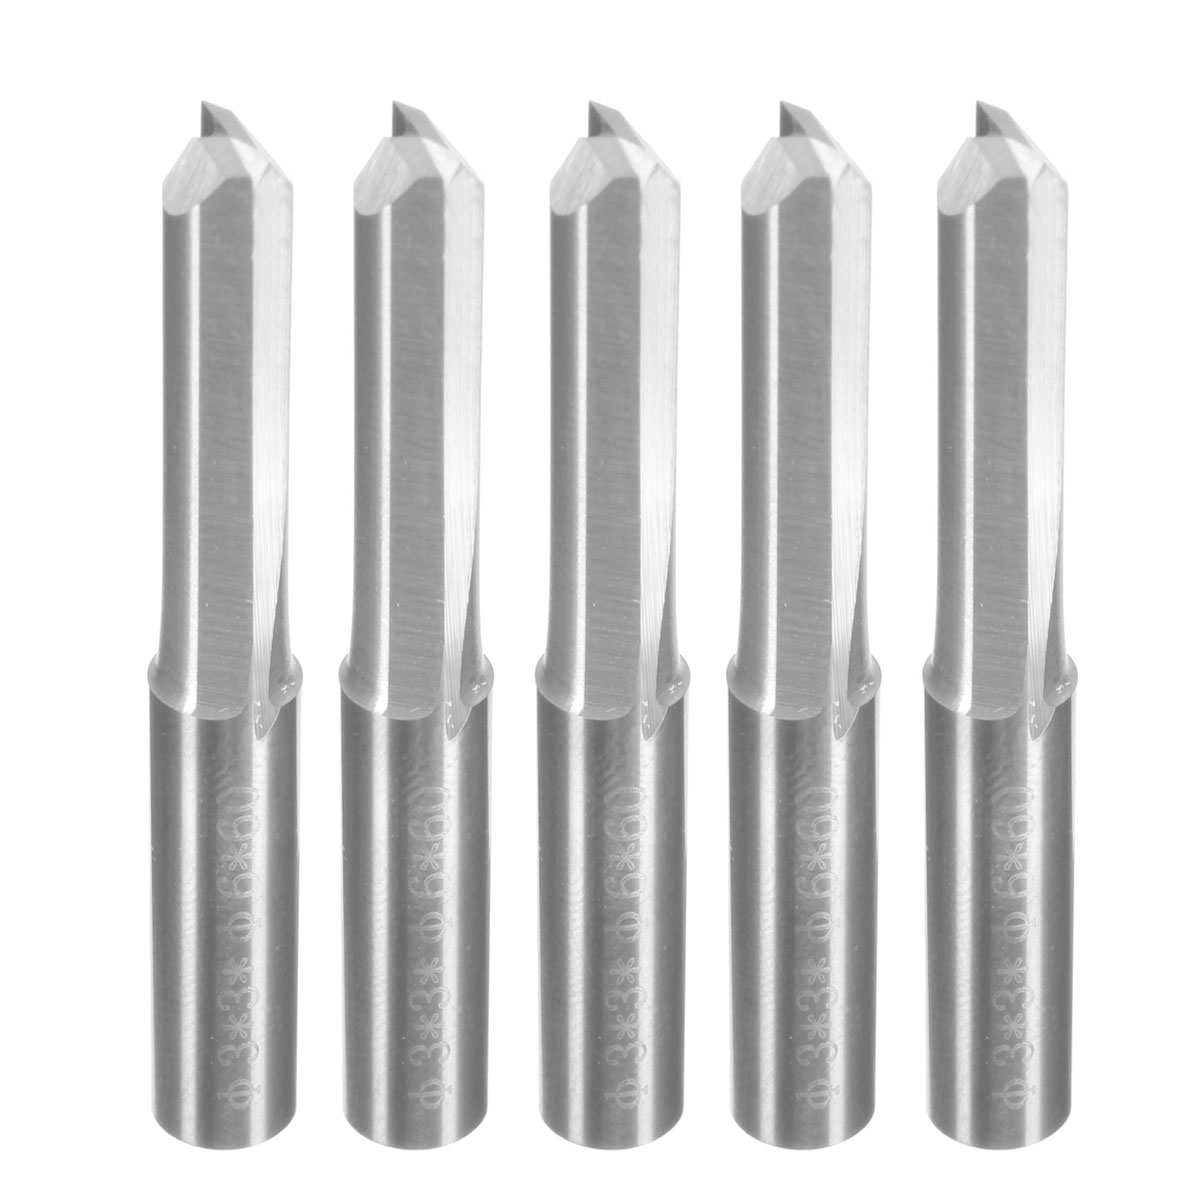 5Pcs/Set 6mm 2 Double Two Flutes Straight Shank CNC Router Bit Straight Grooving End Mill Steel Cutter Tool Milling Tools best price mgehr1212 2 slot cutter external grooving tool holder turning tool no insert hot sale brand new